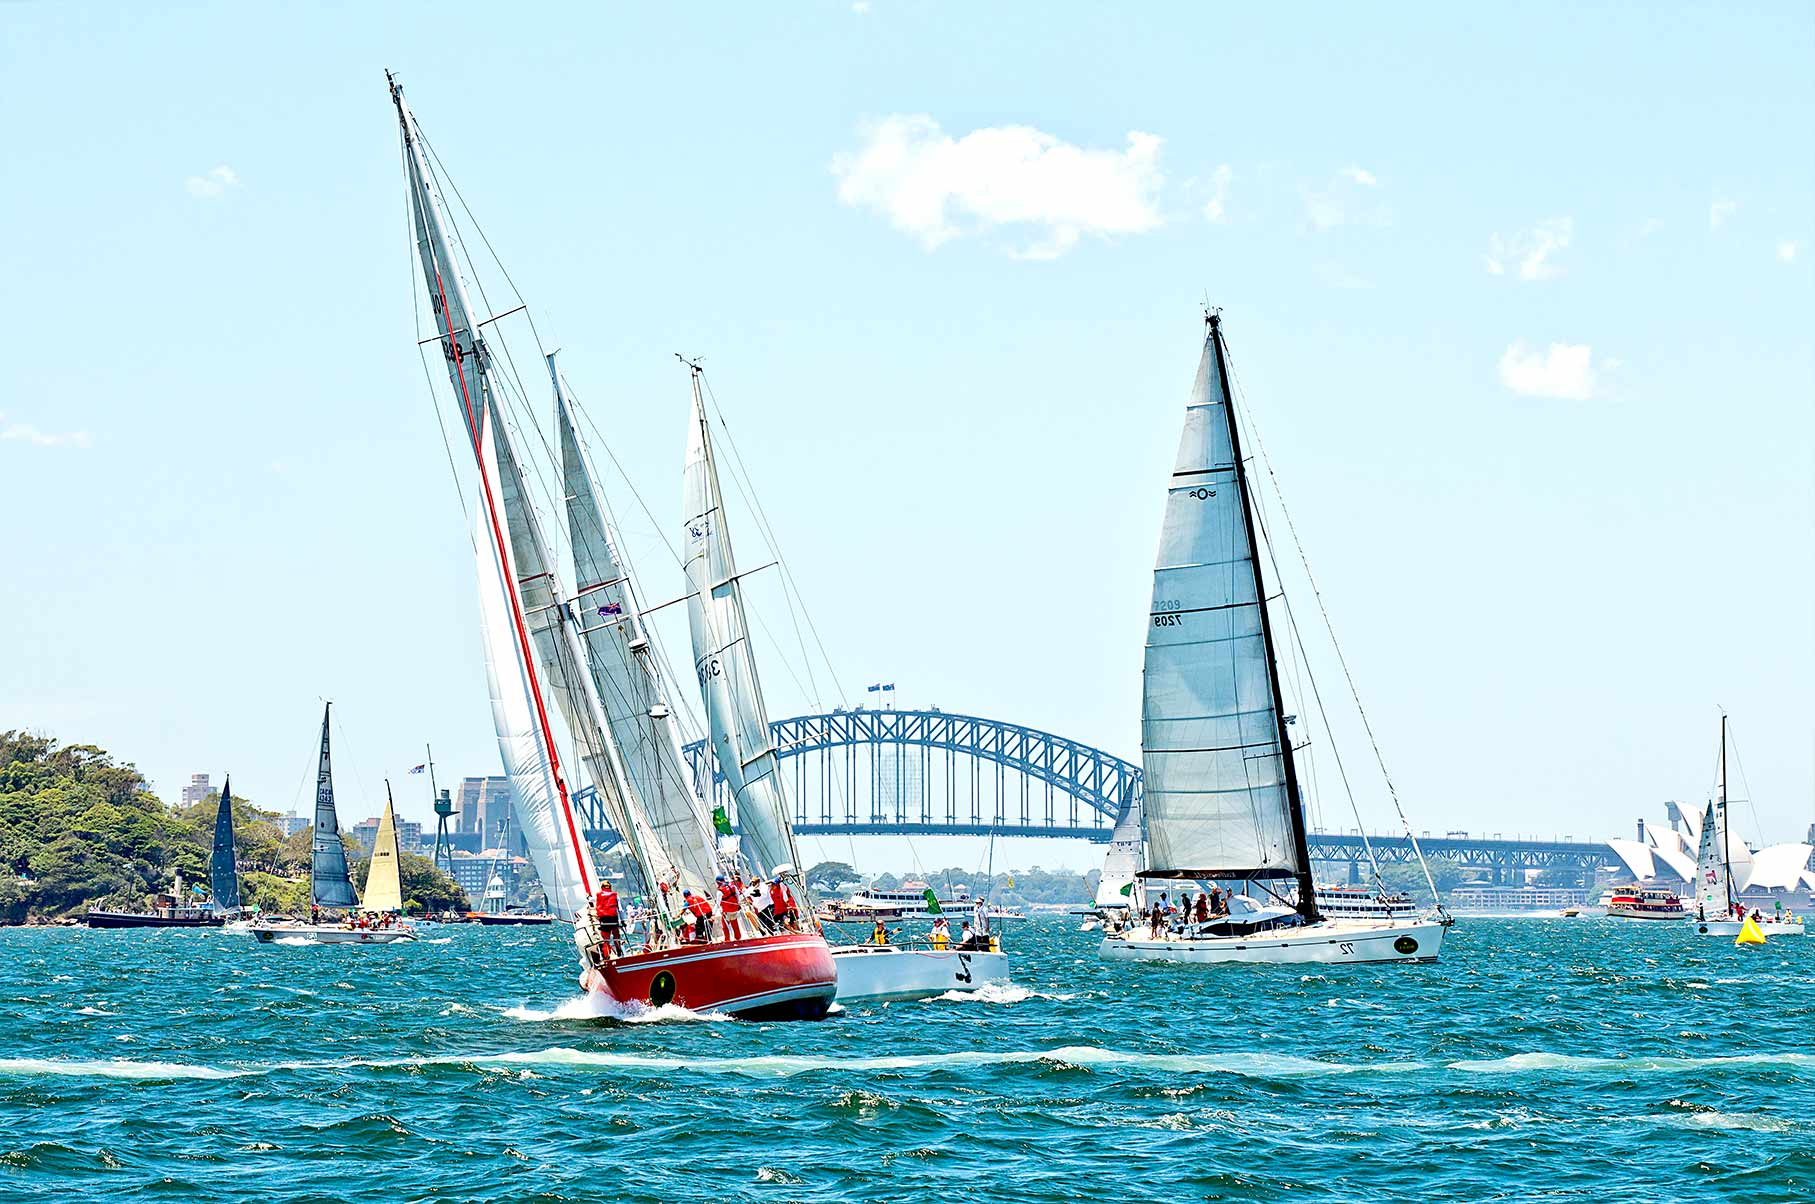 Sydney International Boat Show – Everything You Need to Know About the 2019 Sydney Boat Show